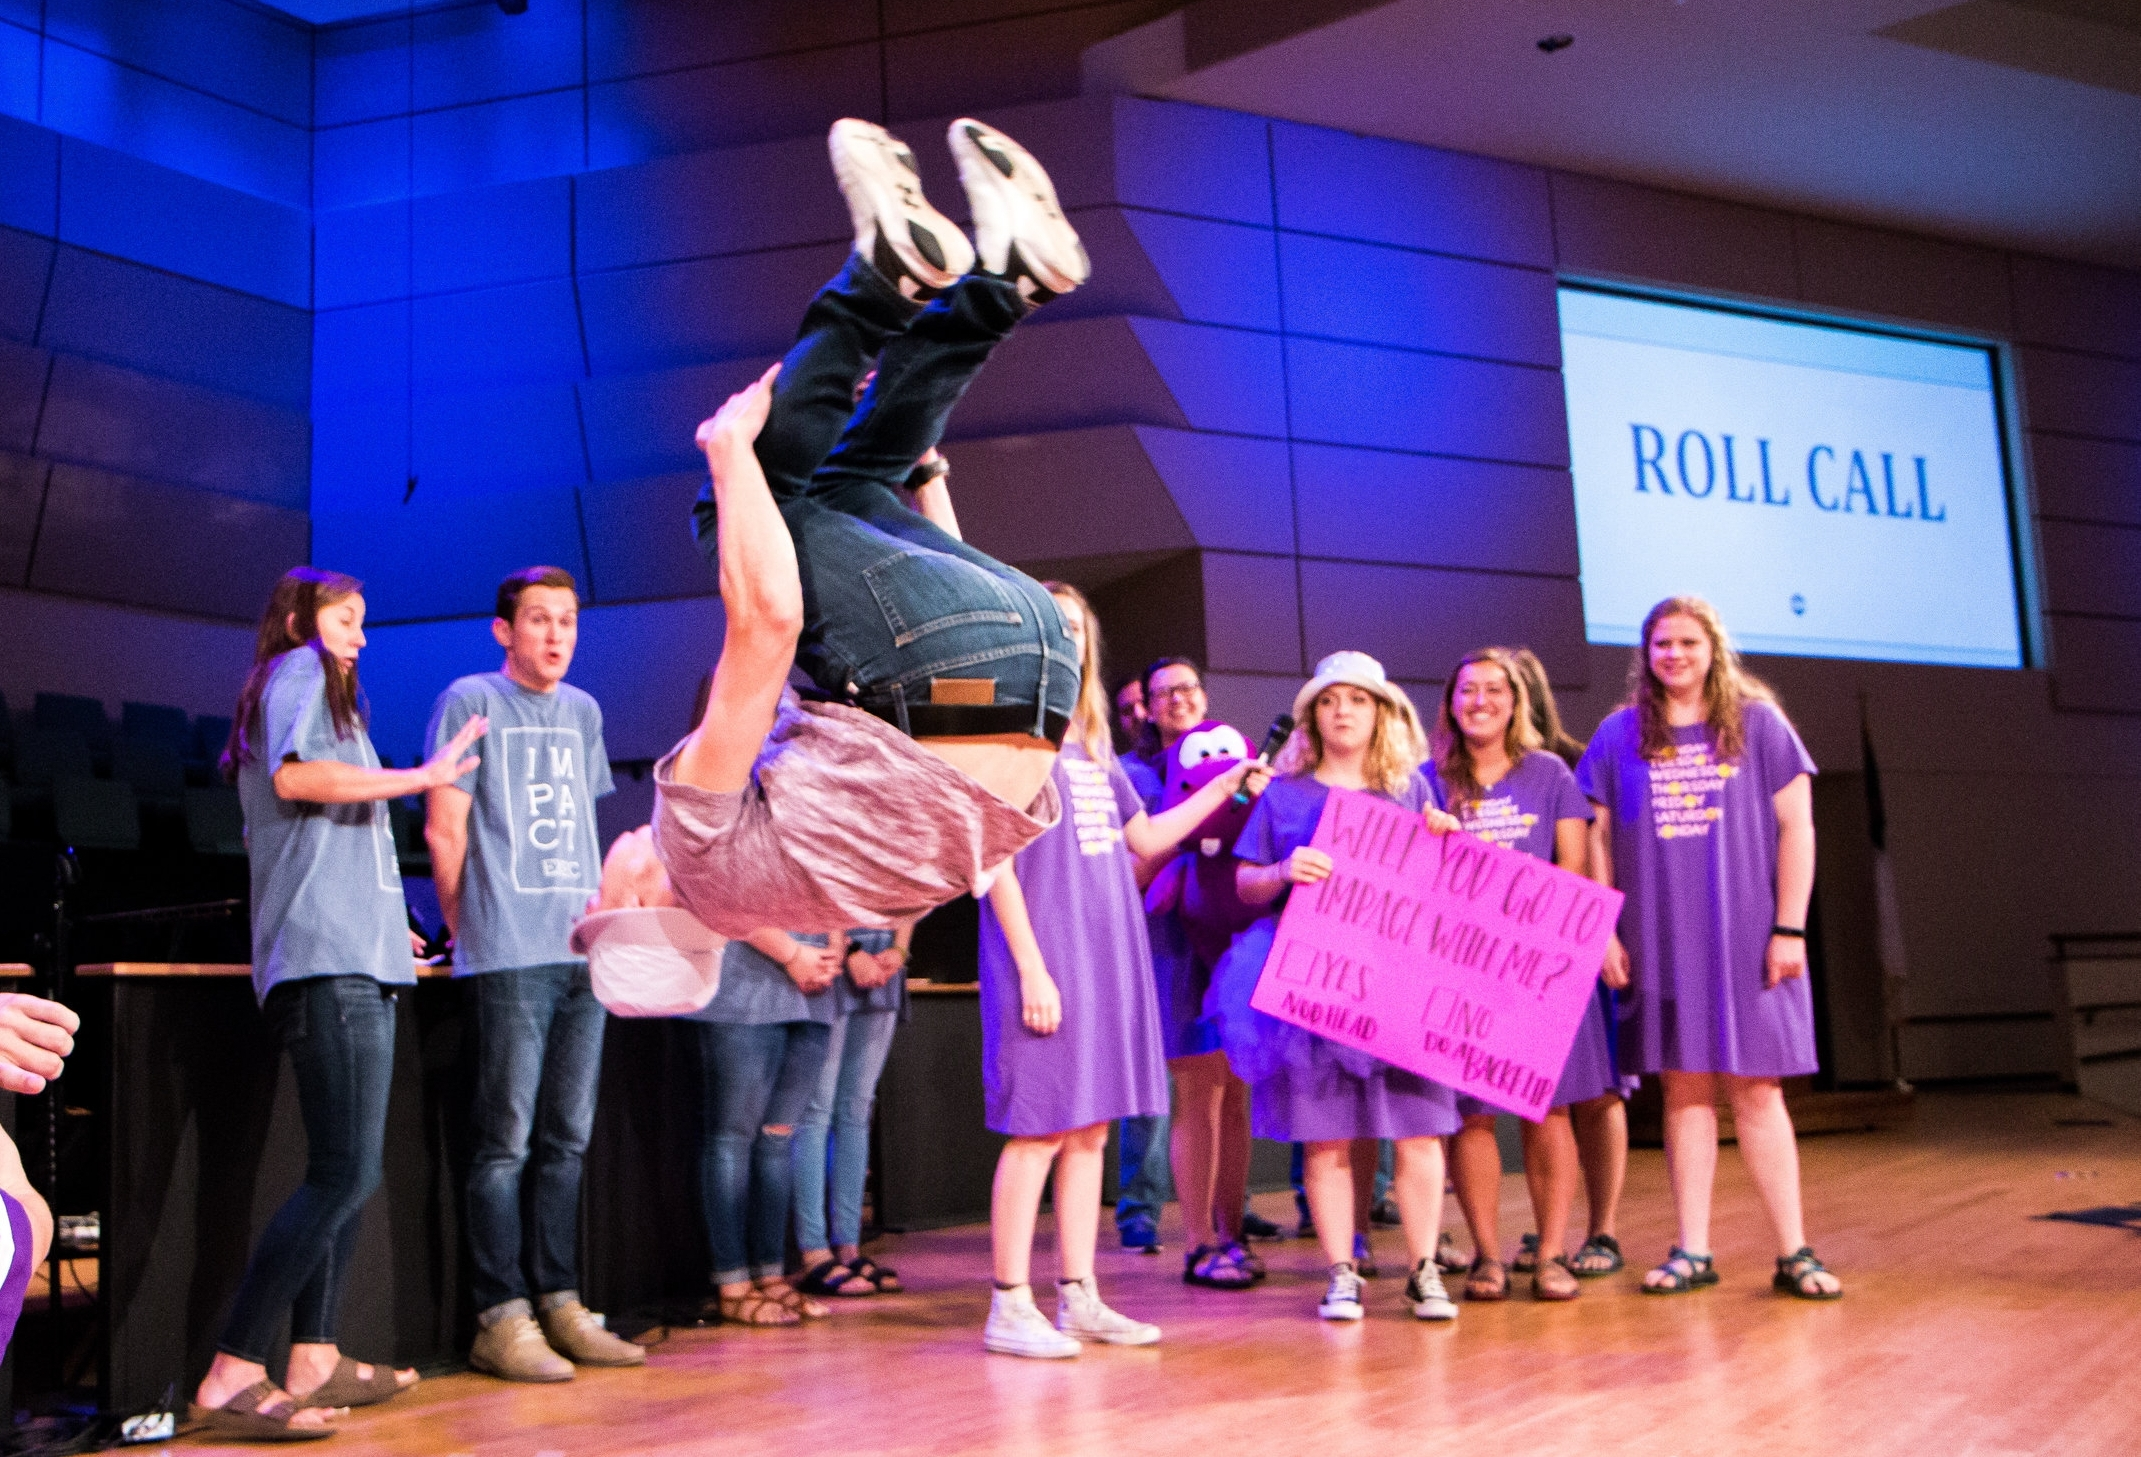 What's your most memorable roll call?  This year at Second Staff Retreat we had a few counselors literally flipping out over roll calls and it definitely caught some of our exec members by surprise!